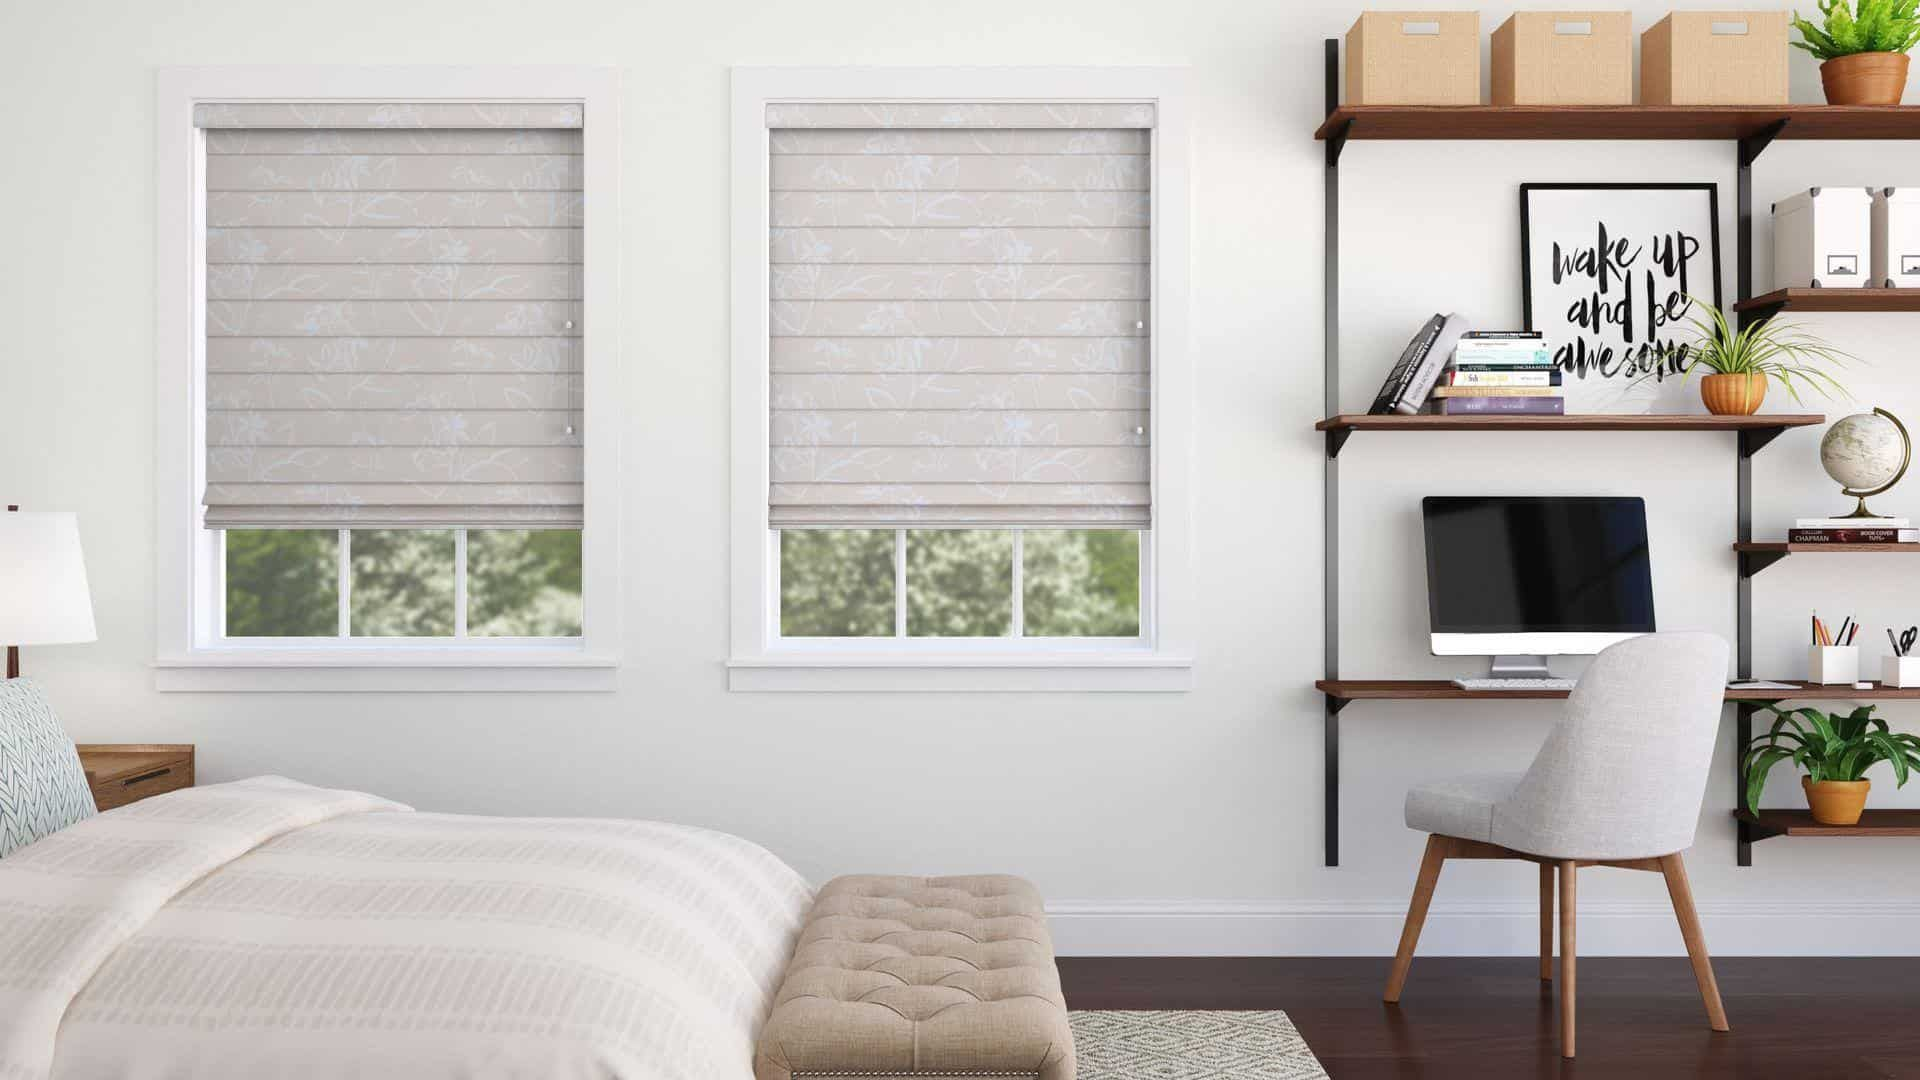 Windows with blinds inside the glass  Good Housekeeping Roman Shades Blackout  House ideas  Pinterest